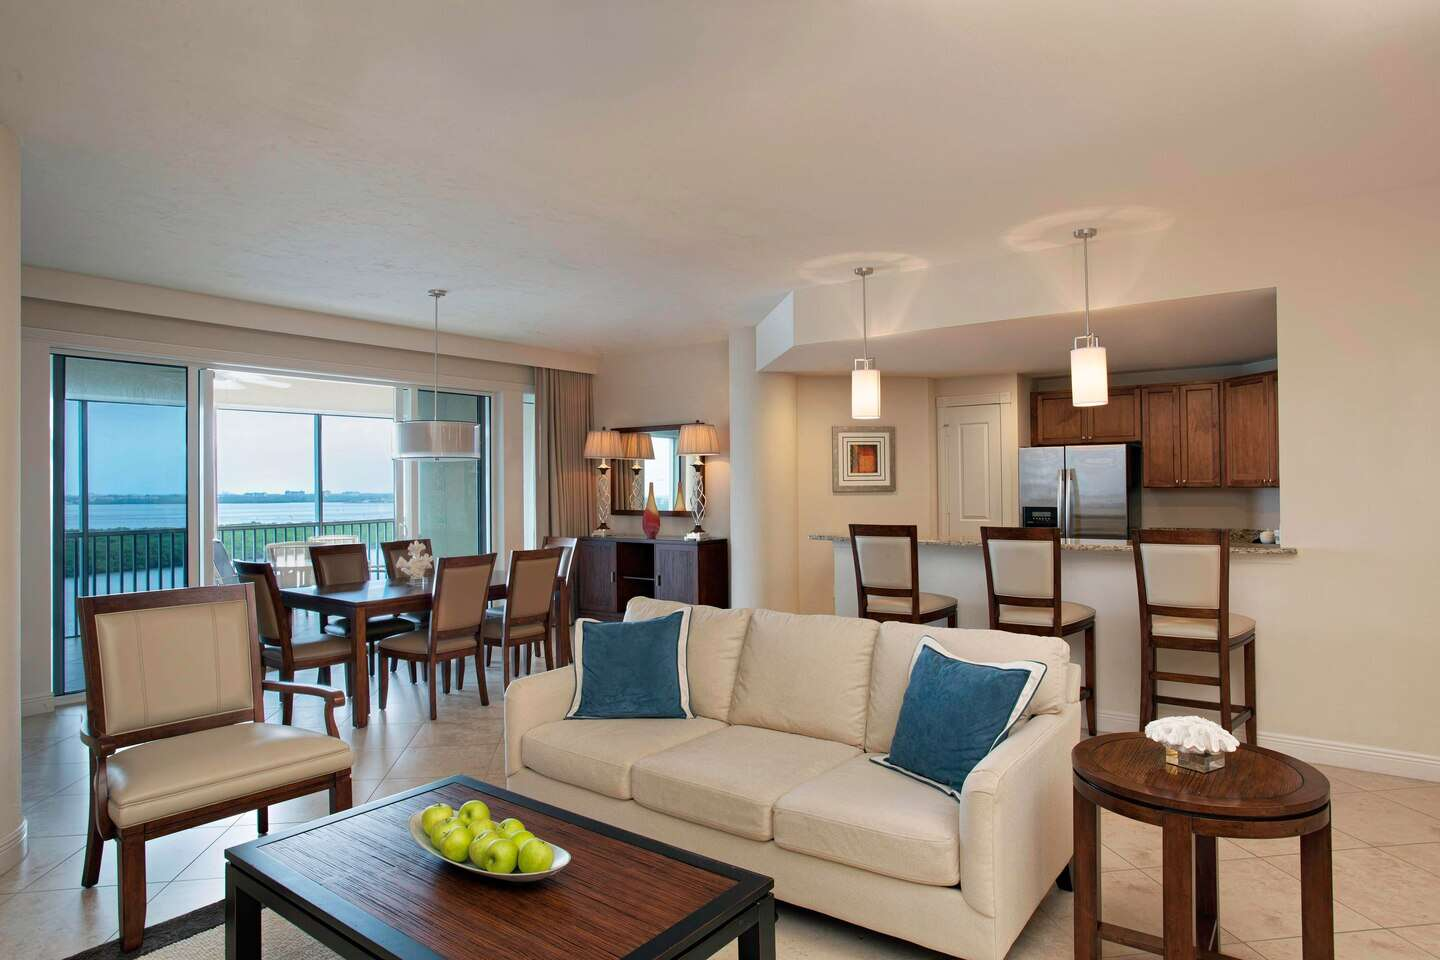 Luxury vacation rentals usa - Florida - Cape coral - The westin cape coral - 2 BDM Marina View - Image 1/17